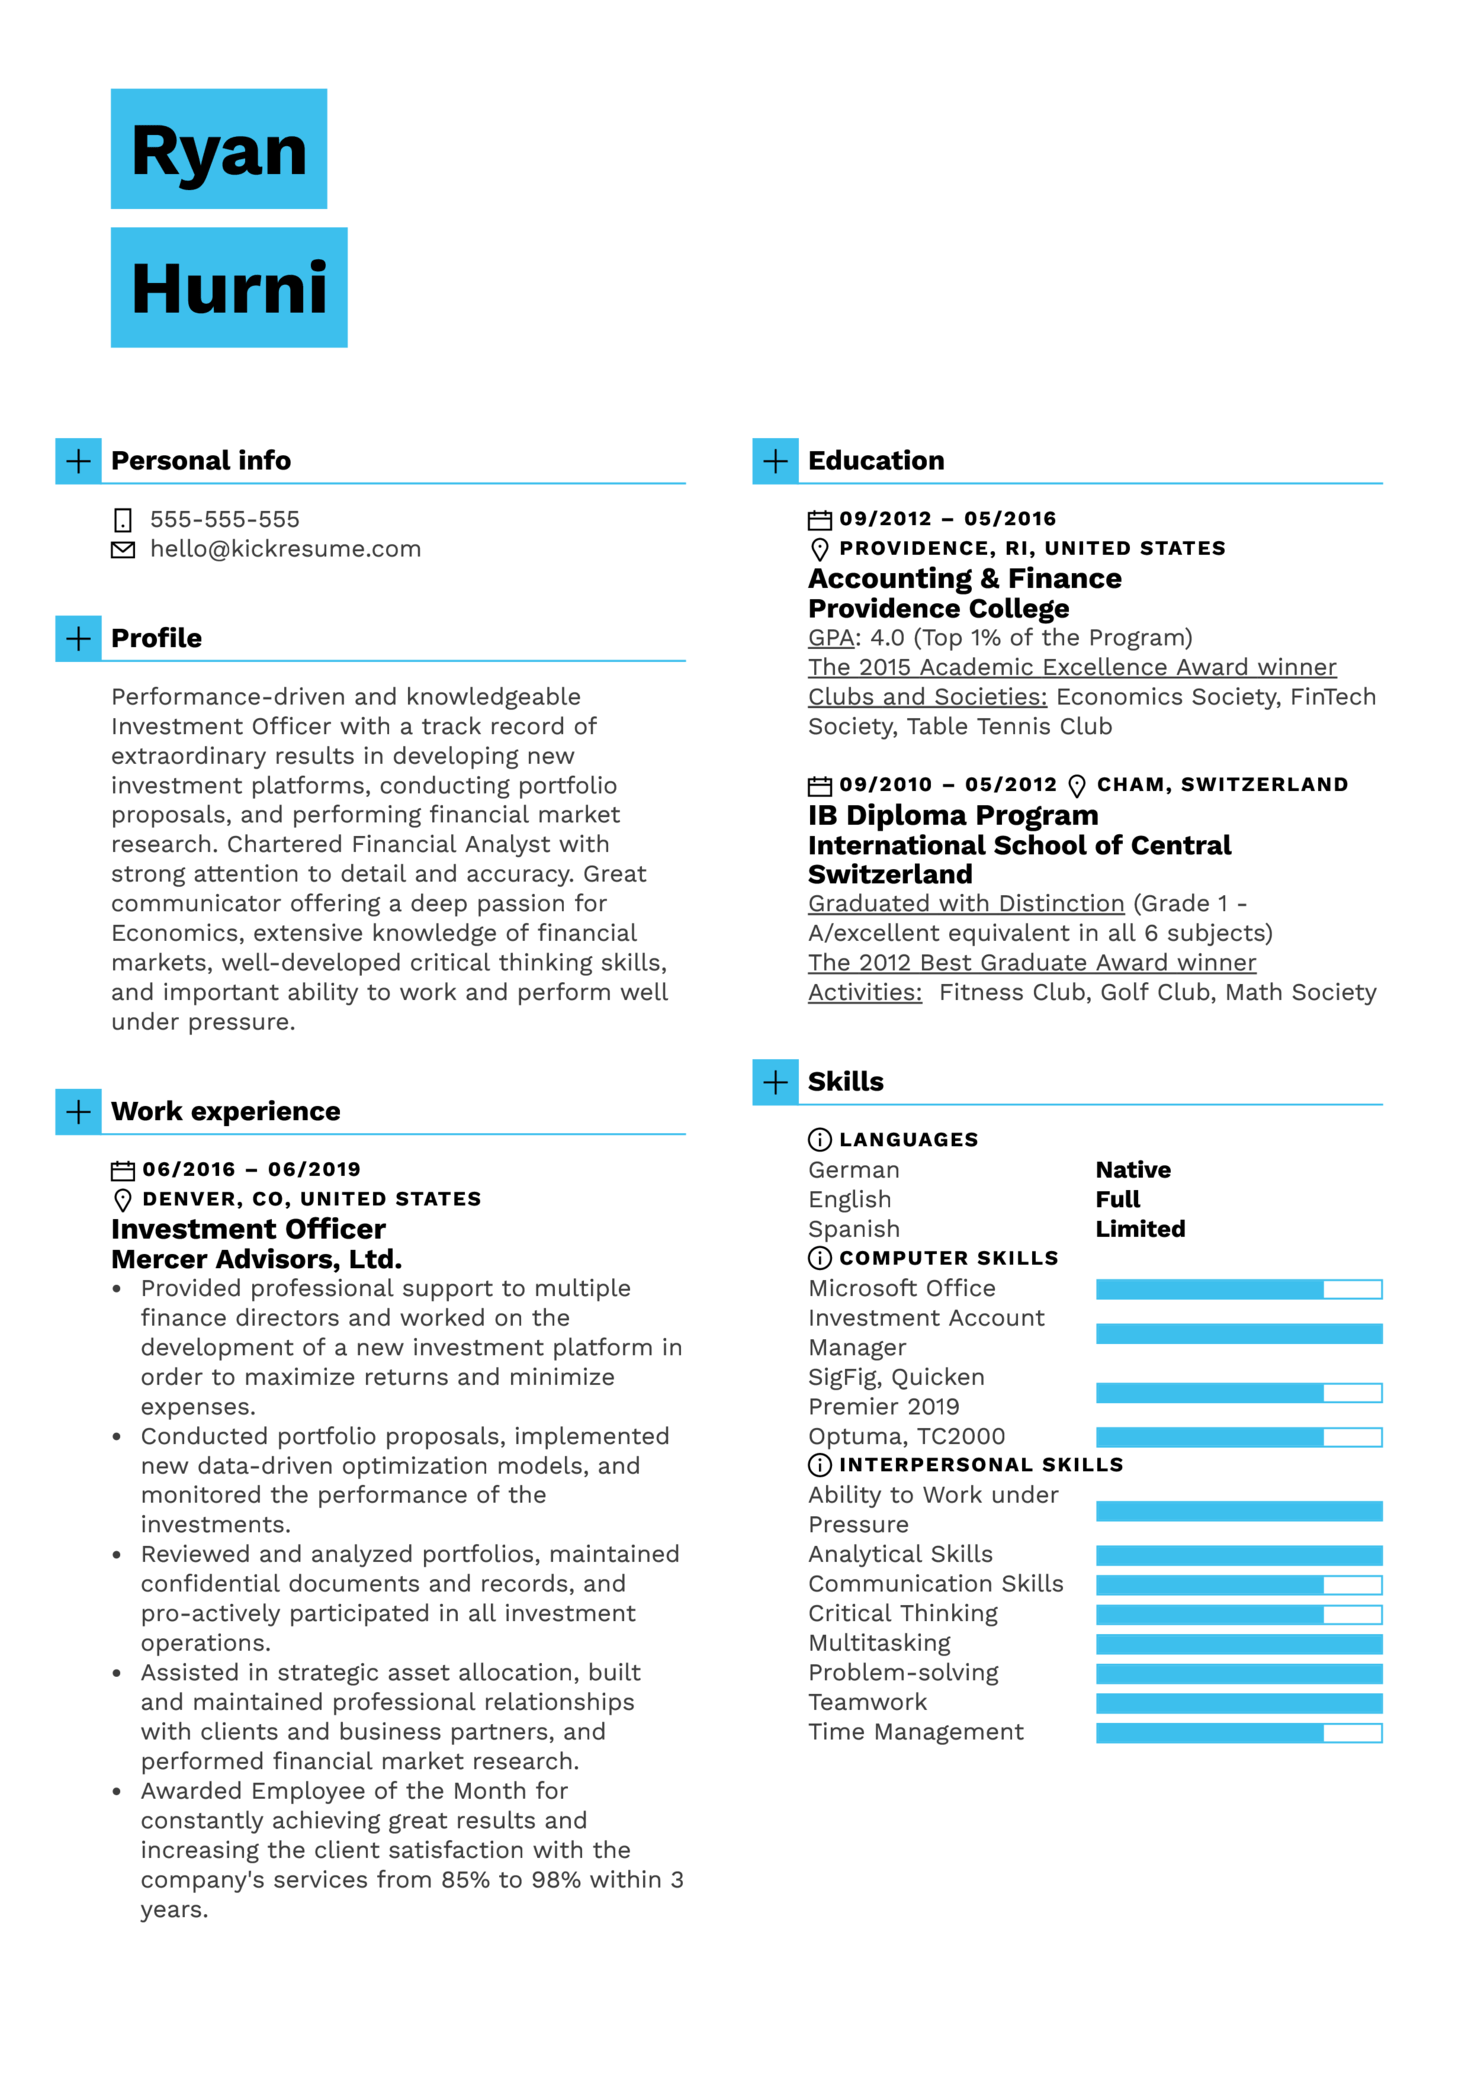 Investment Officer Resume Example (parte 1)